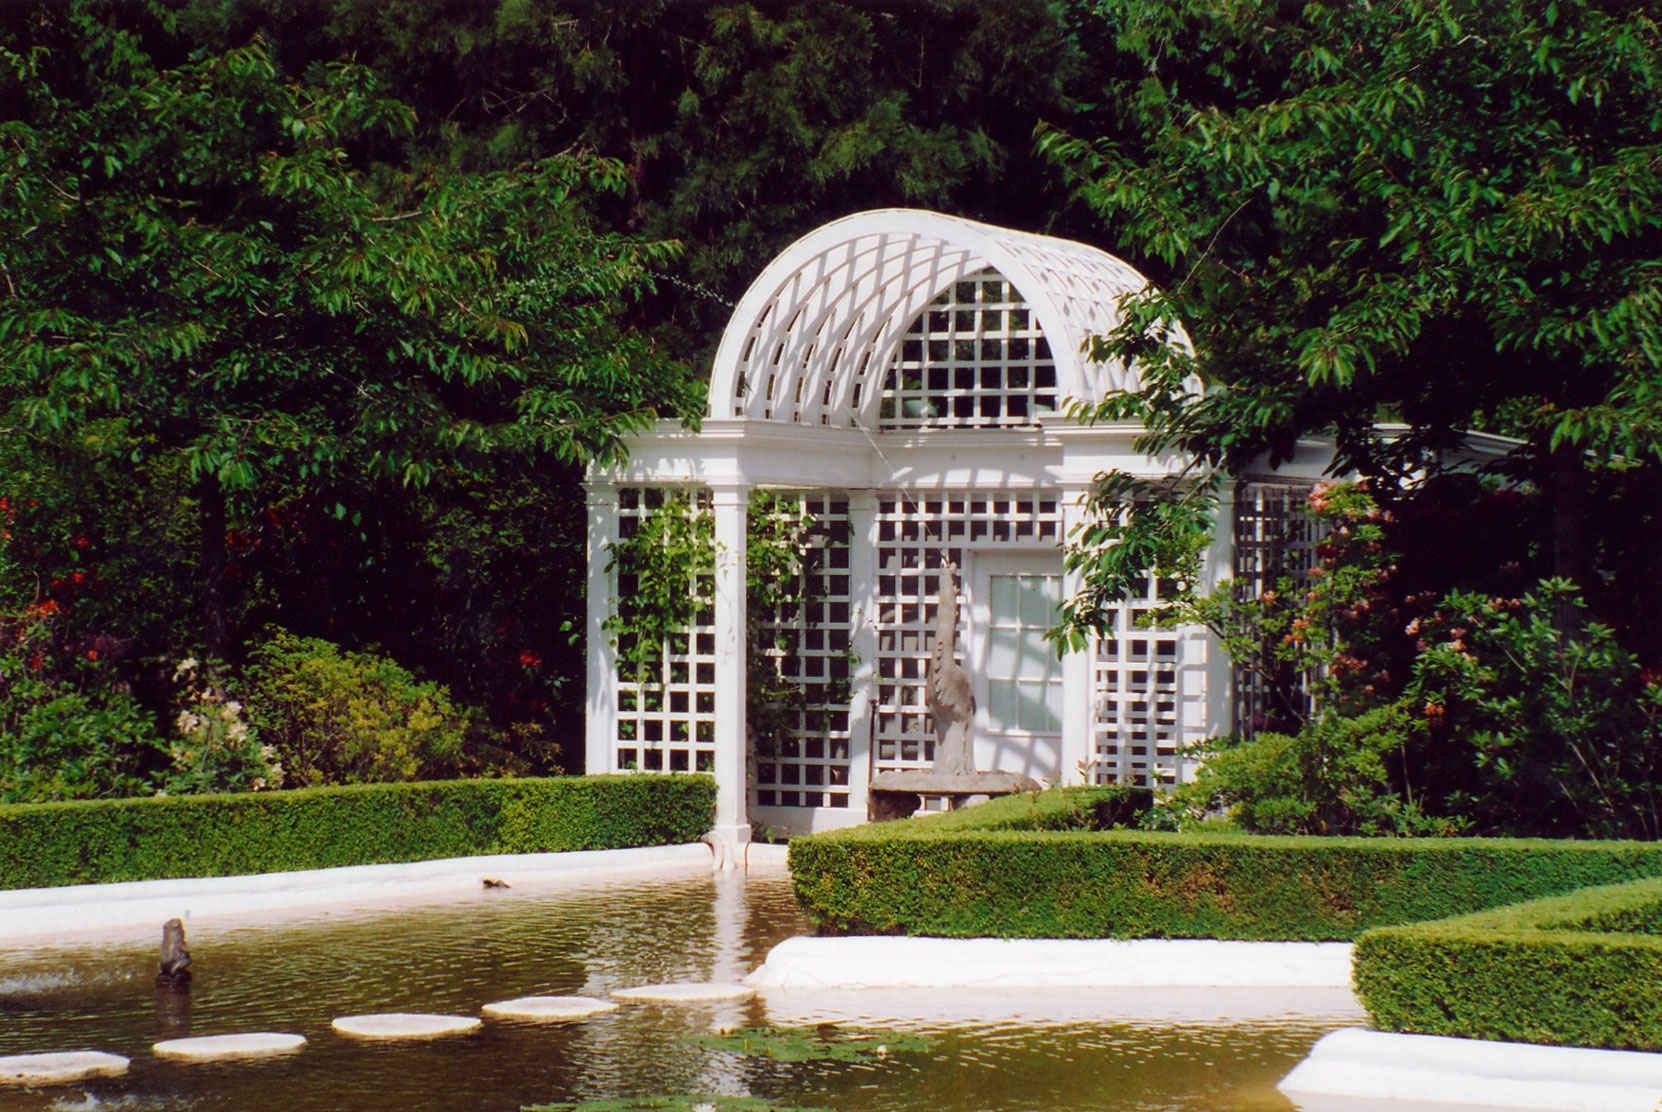 The Duck Pond Arbor designed for Robert Butchart by archtect Samuel Maclure circa 1925 (photo by Author)